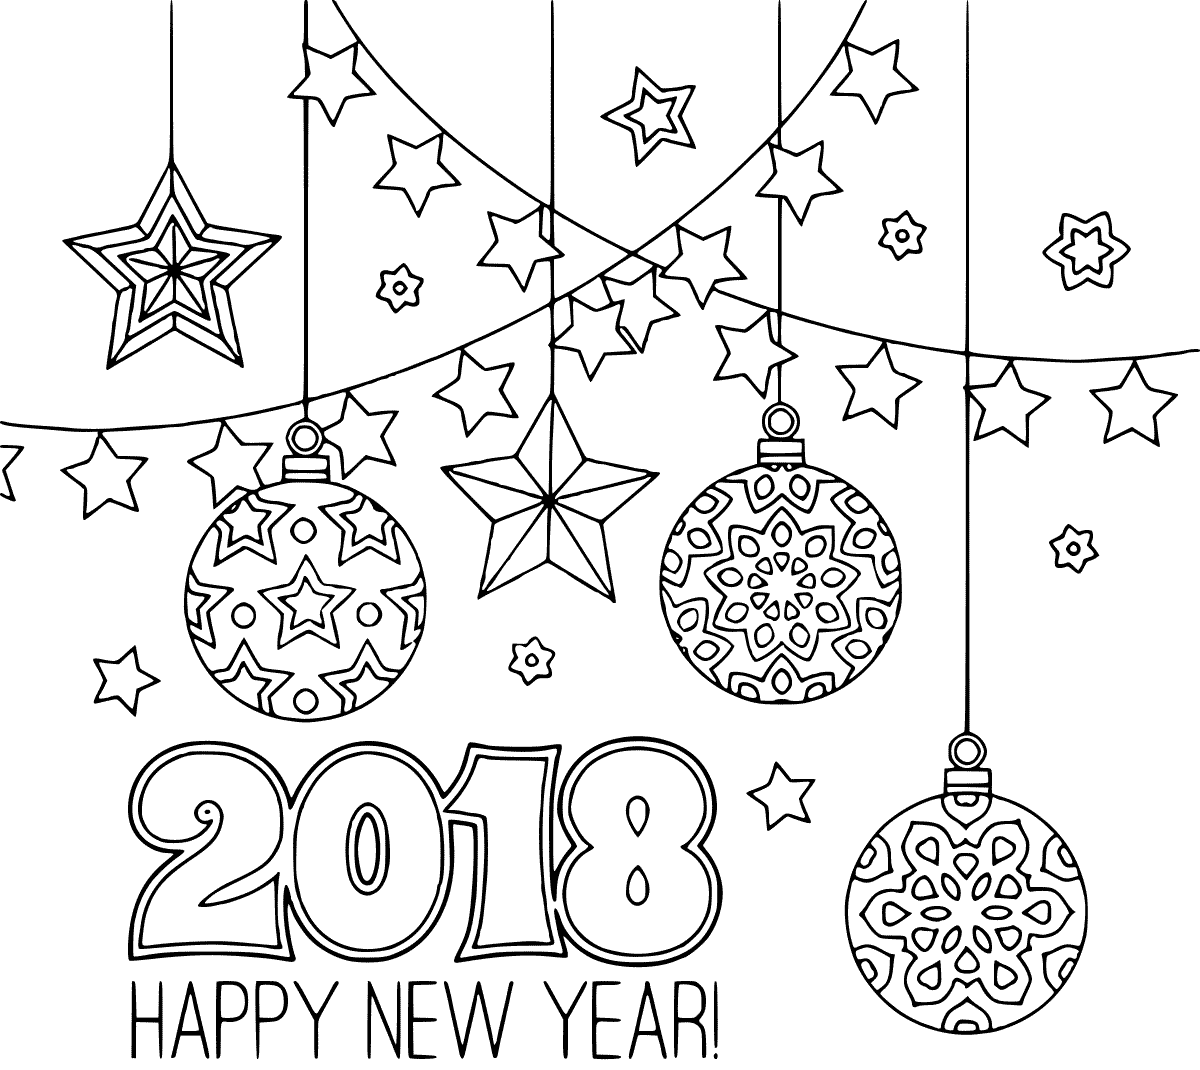 New Year Handwriting Worksheet Preschool Worksheets Happy Yeah New Best Free Printable Worksheets